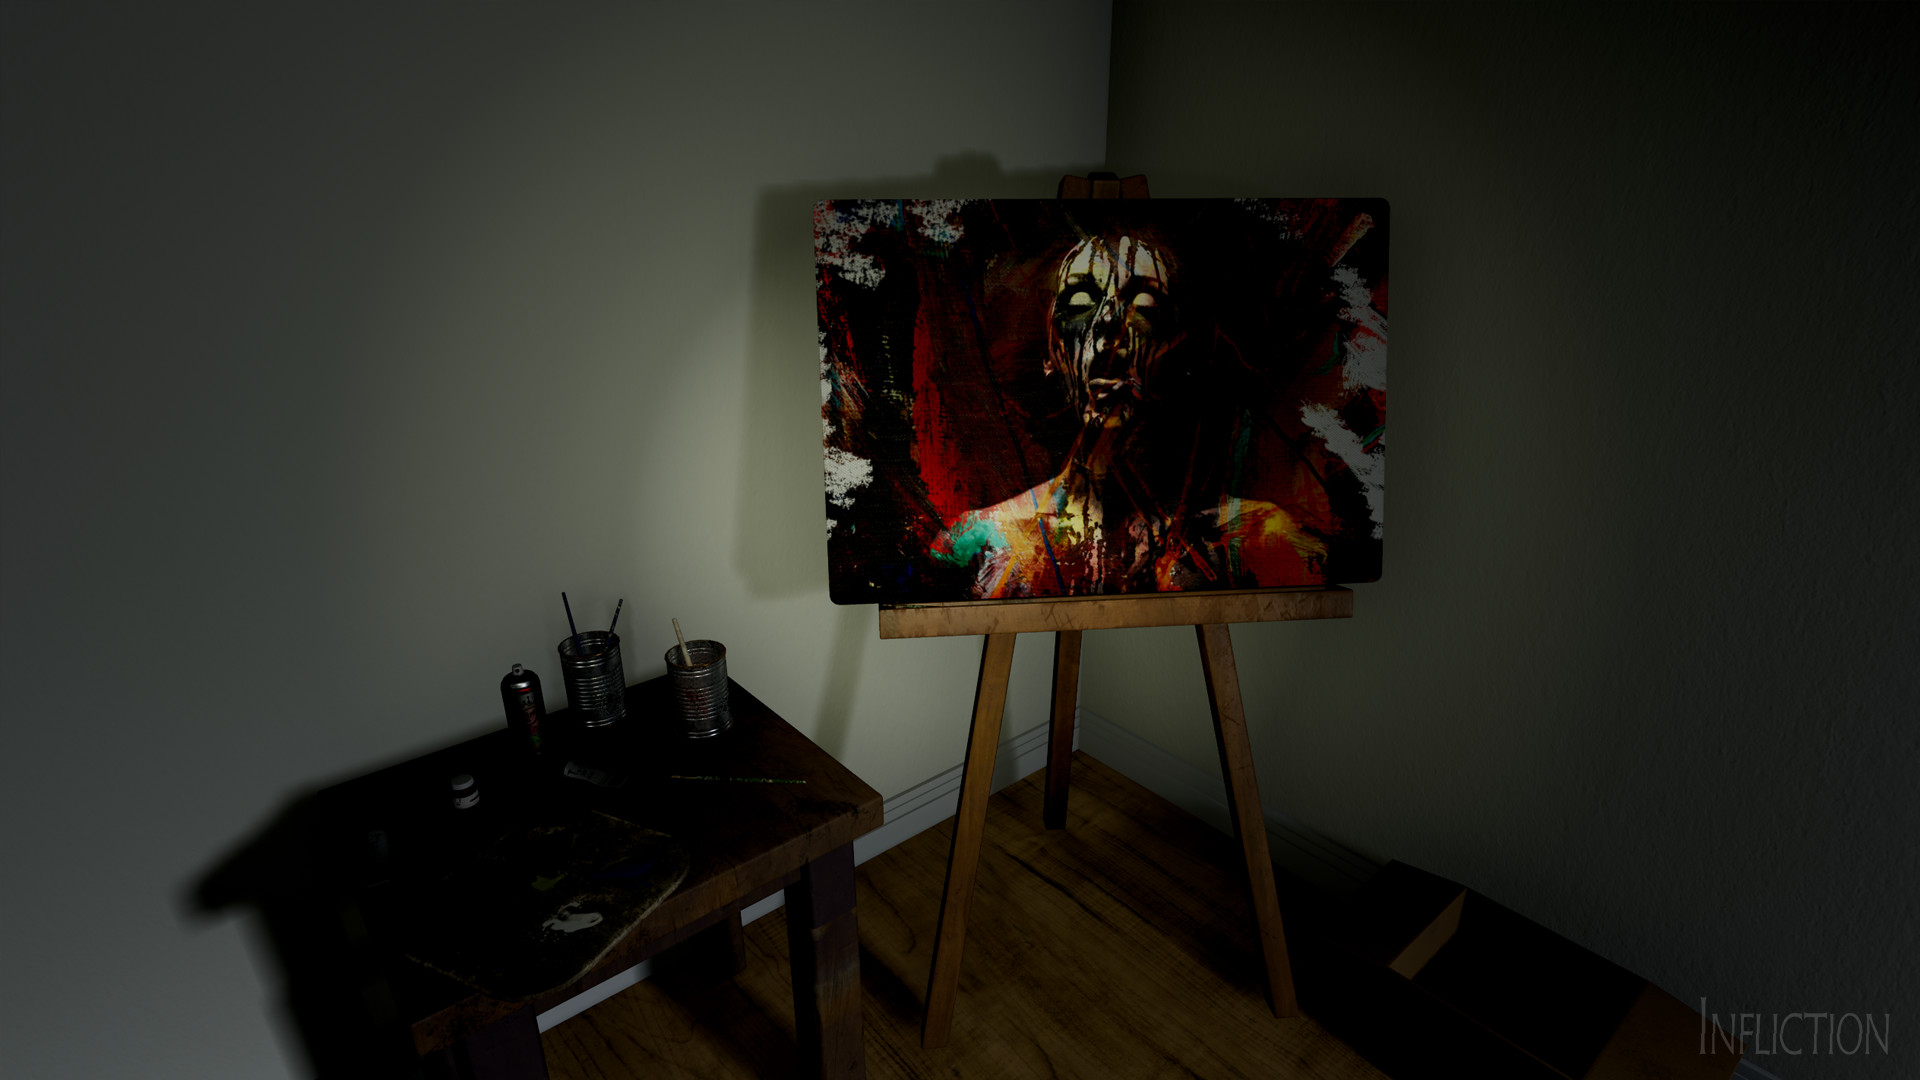 INFLICTION EXTENDED CUT FREE DOWNLOAD